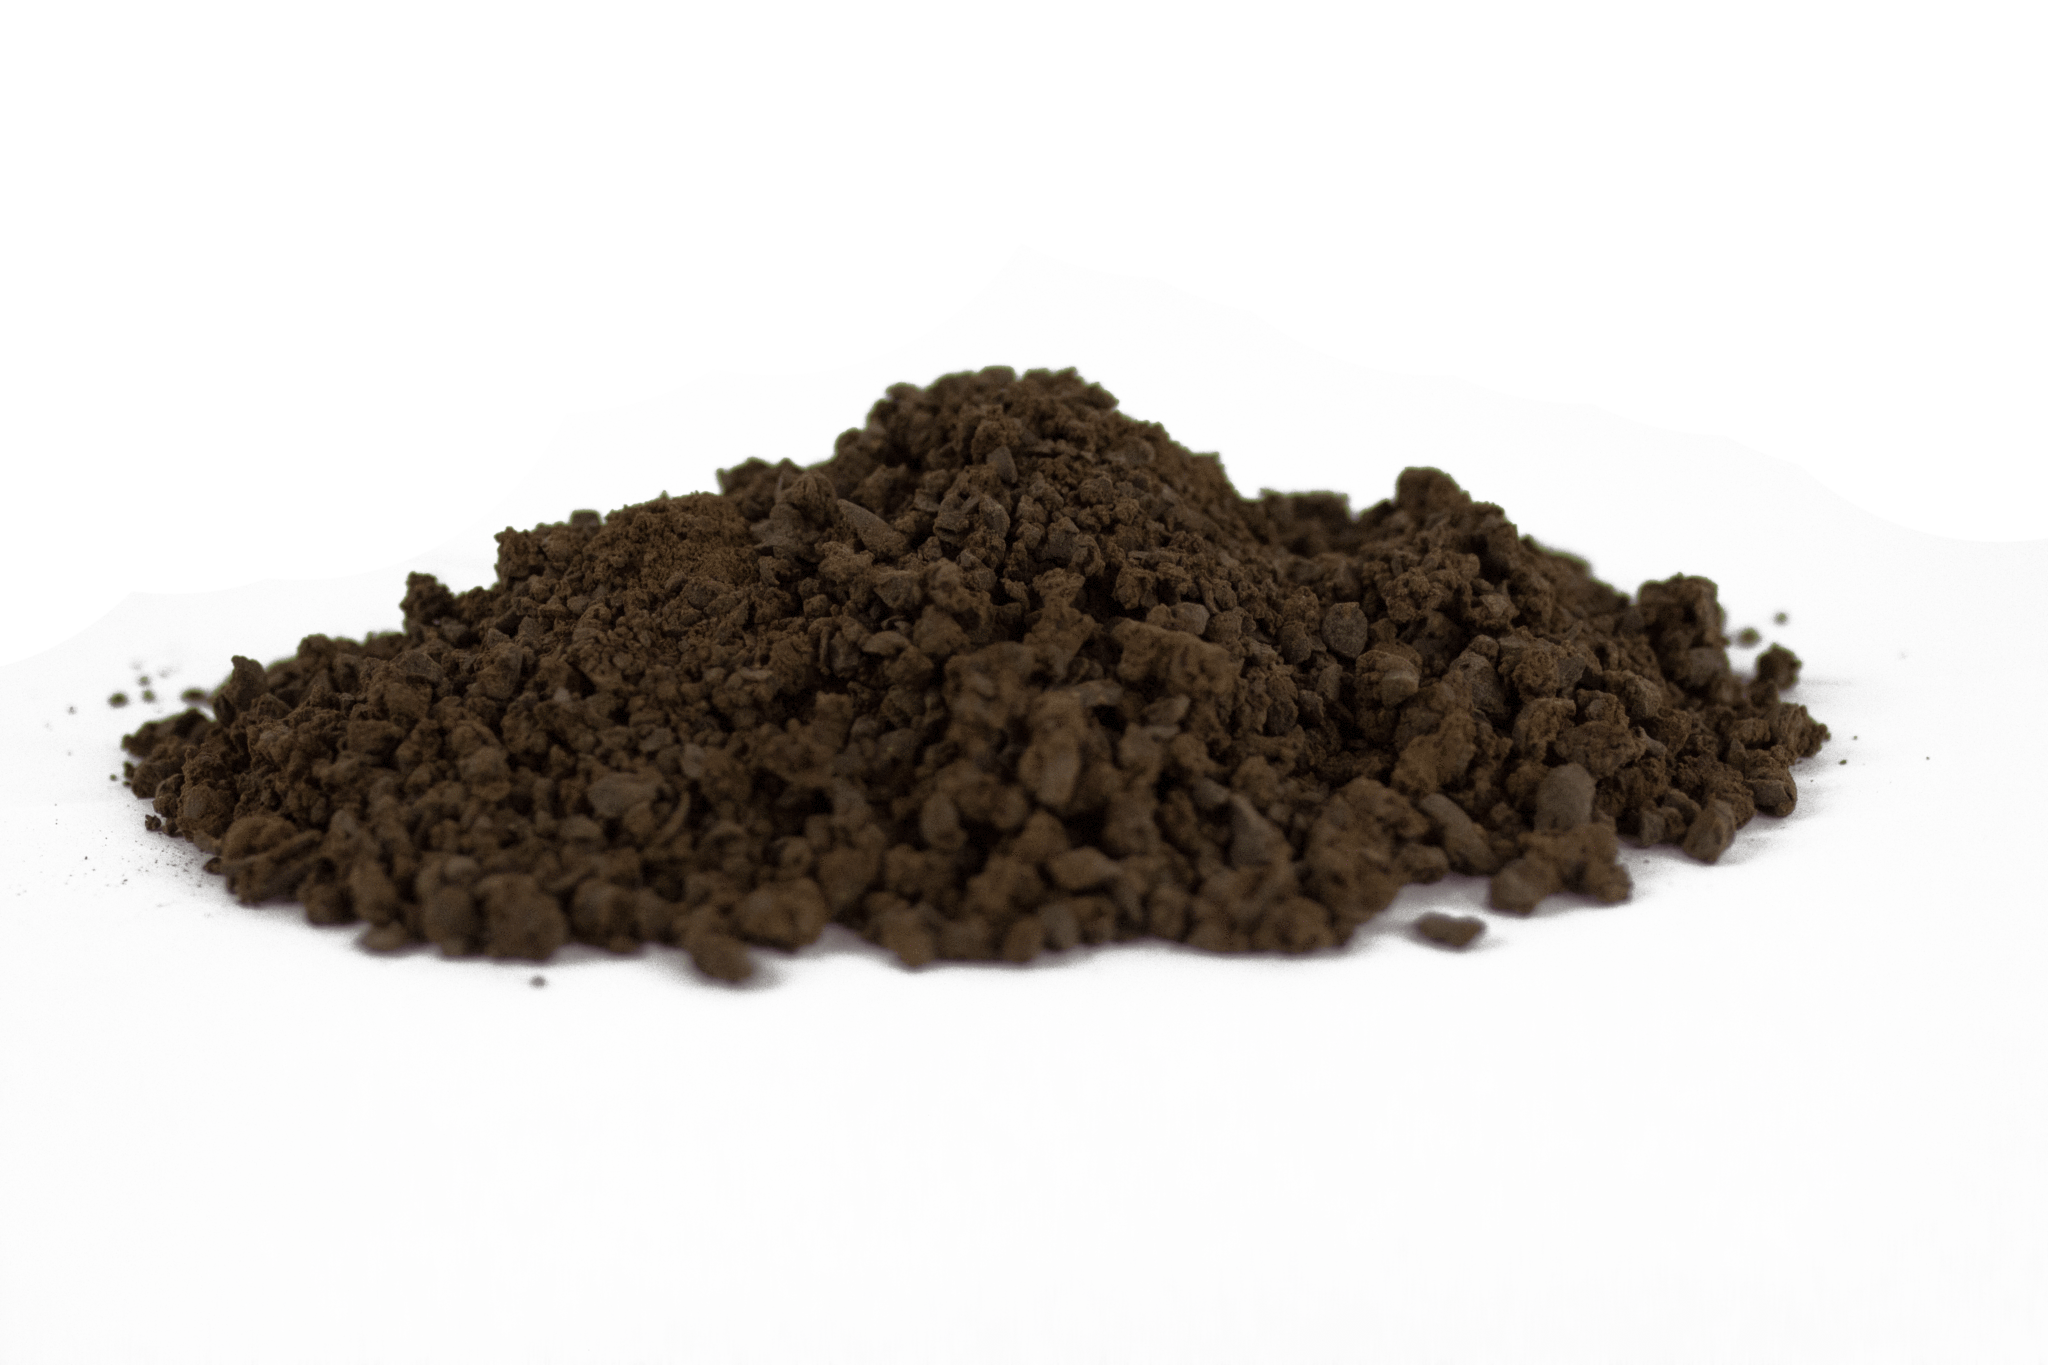 Spilled soil png. Buy get free mix